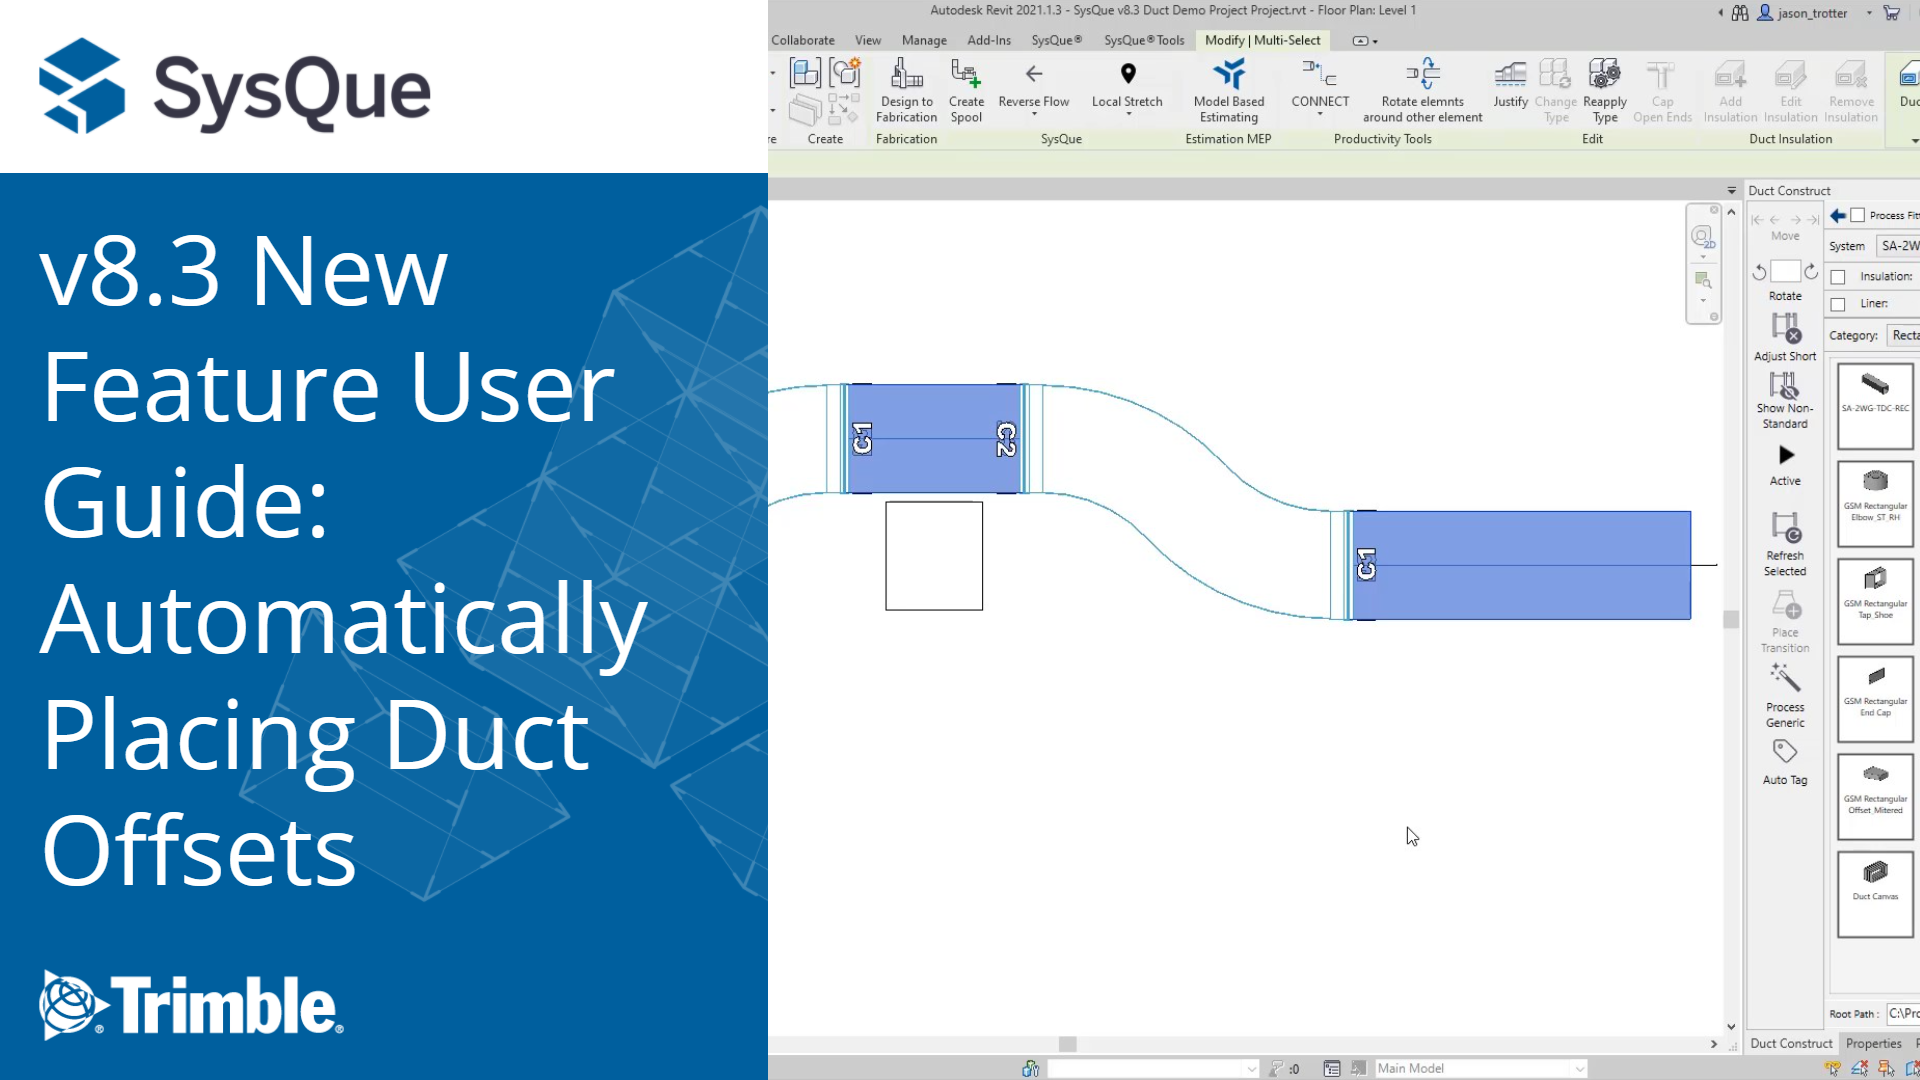 SysQue v8.3 New Feature User Guide: Automatically Placing Duct Offsets